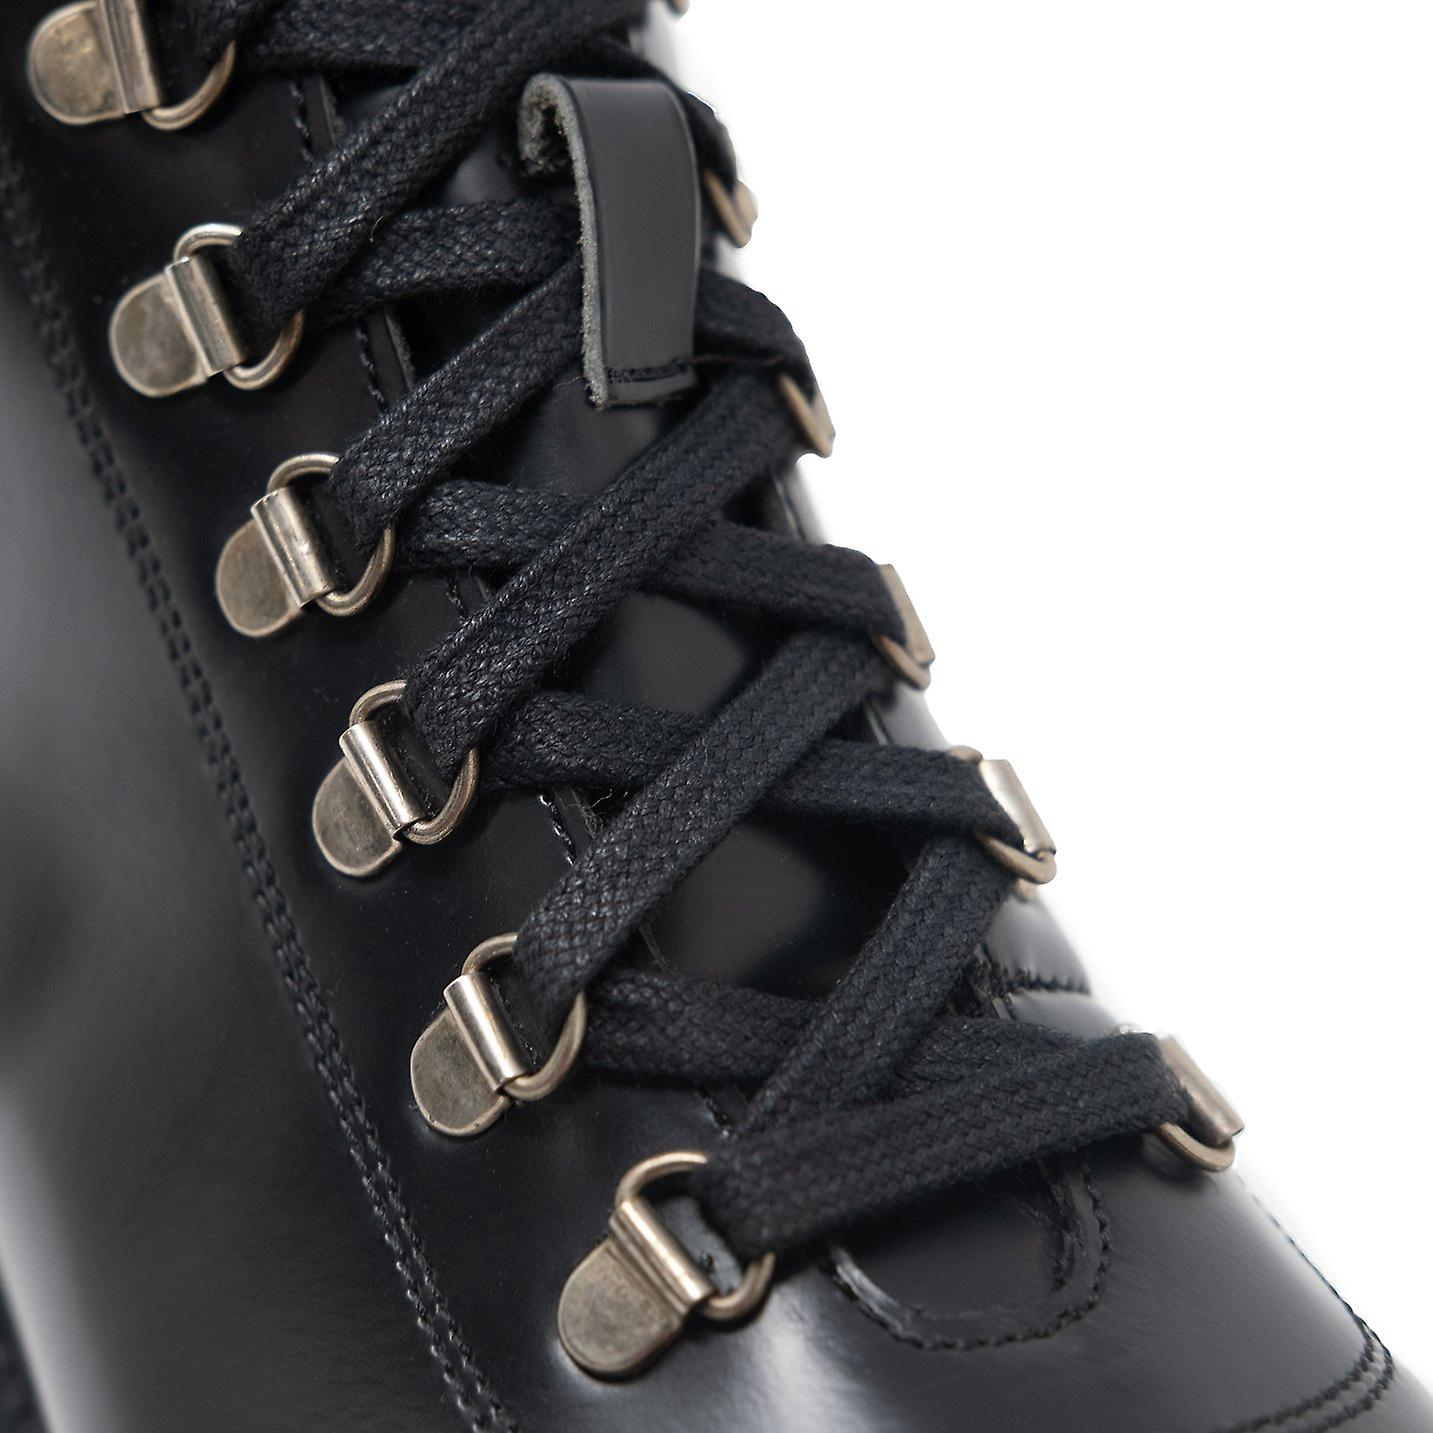 Walk london sean hiking boots in black leather